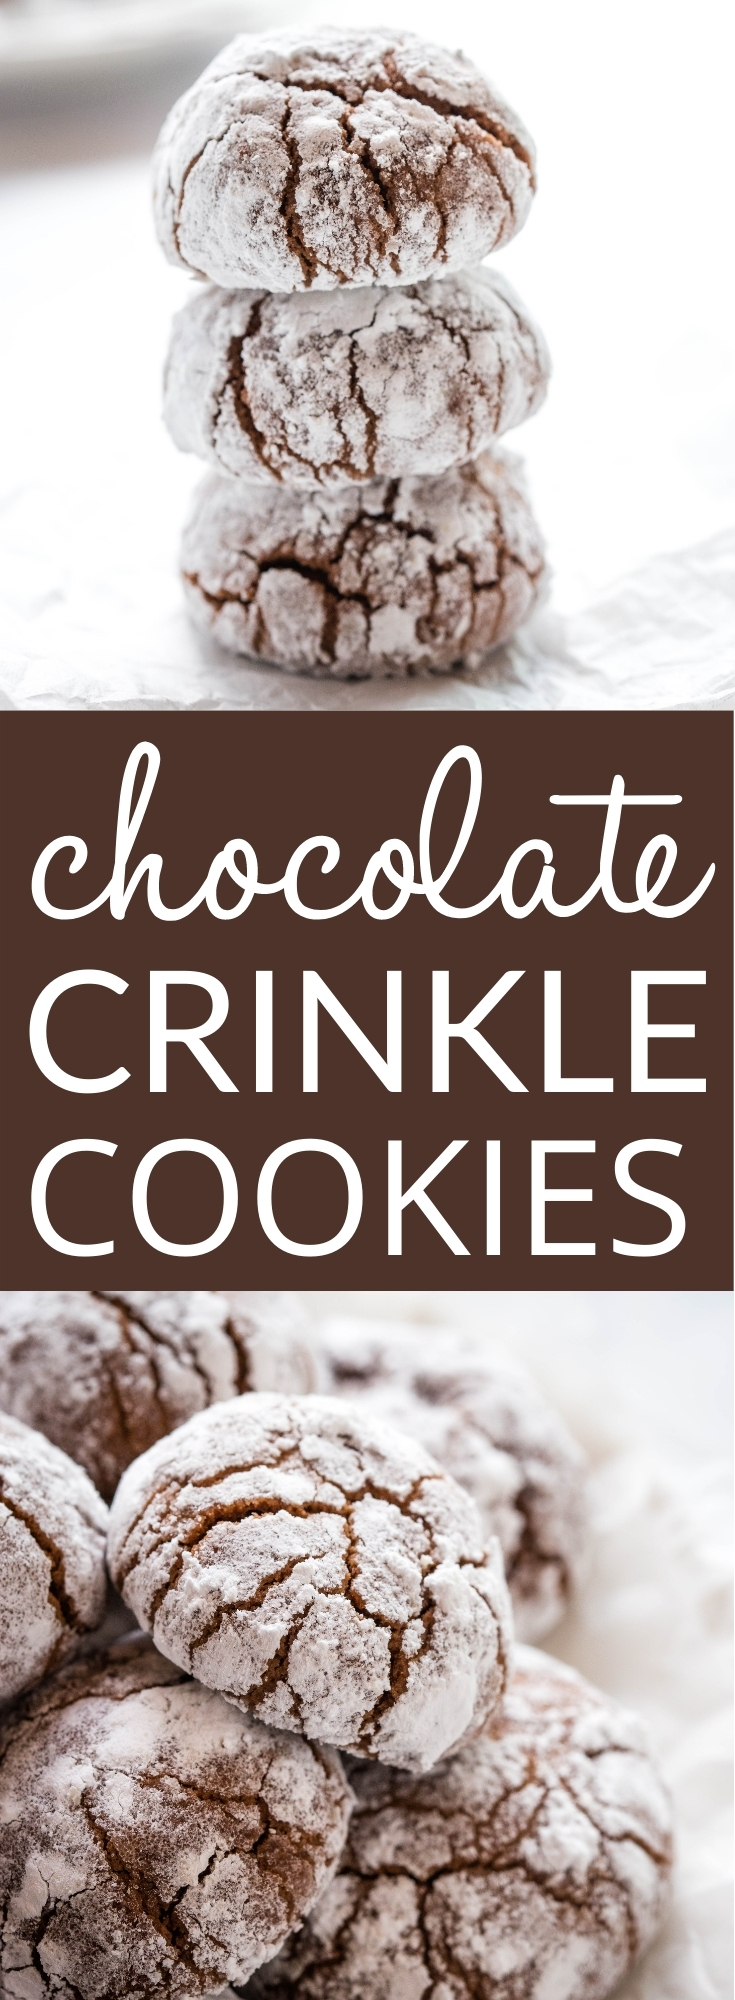 These Chocolate Crinkle Cookies are an easy-to-make cookie recipe that's perfect for Christmas! Made with real chocolate and coated in sugar for the perfect holiday treat! Recipe from thebusybaker.ca! #holiday #cookies #baking #christmasbaking #chocolate #chocolatecrinklecookies #cookietray #homemade #holidays via @busybakerblog